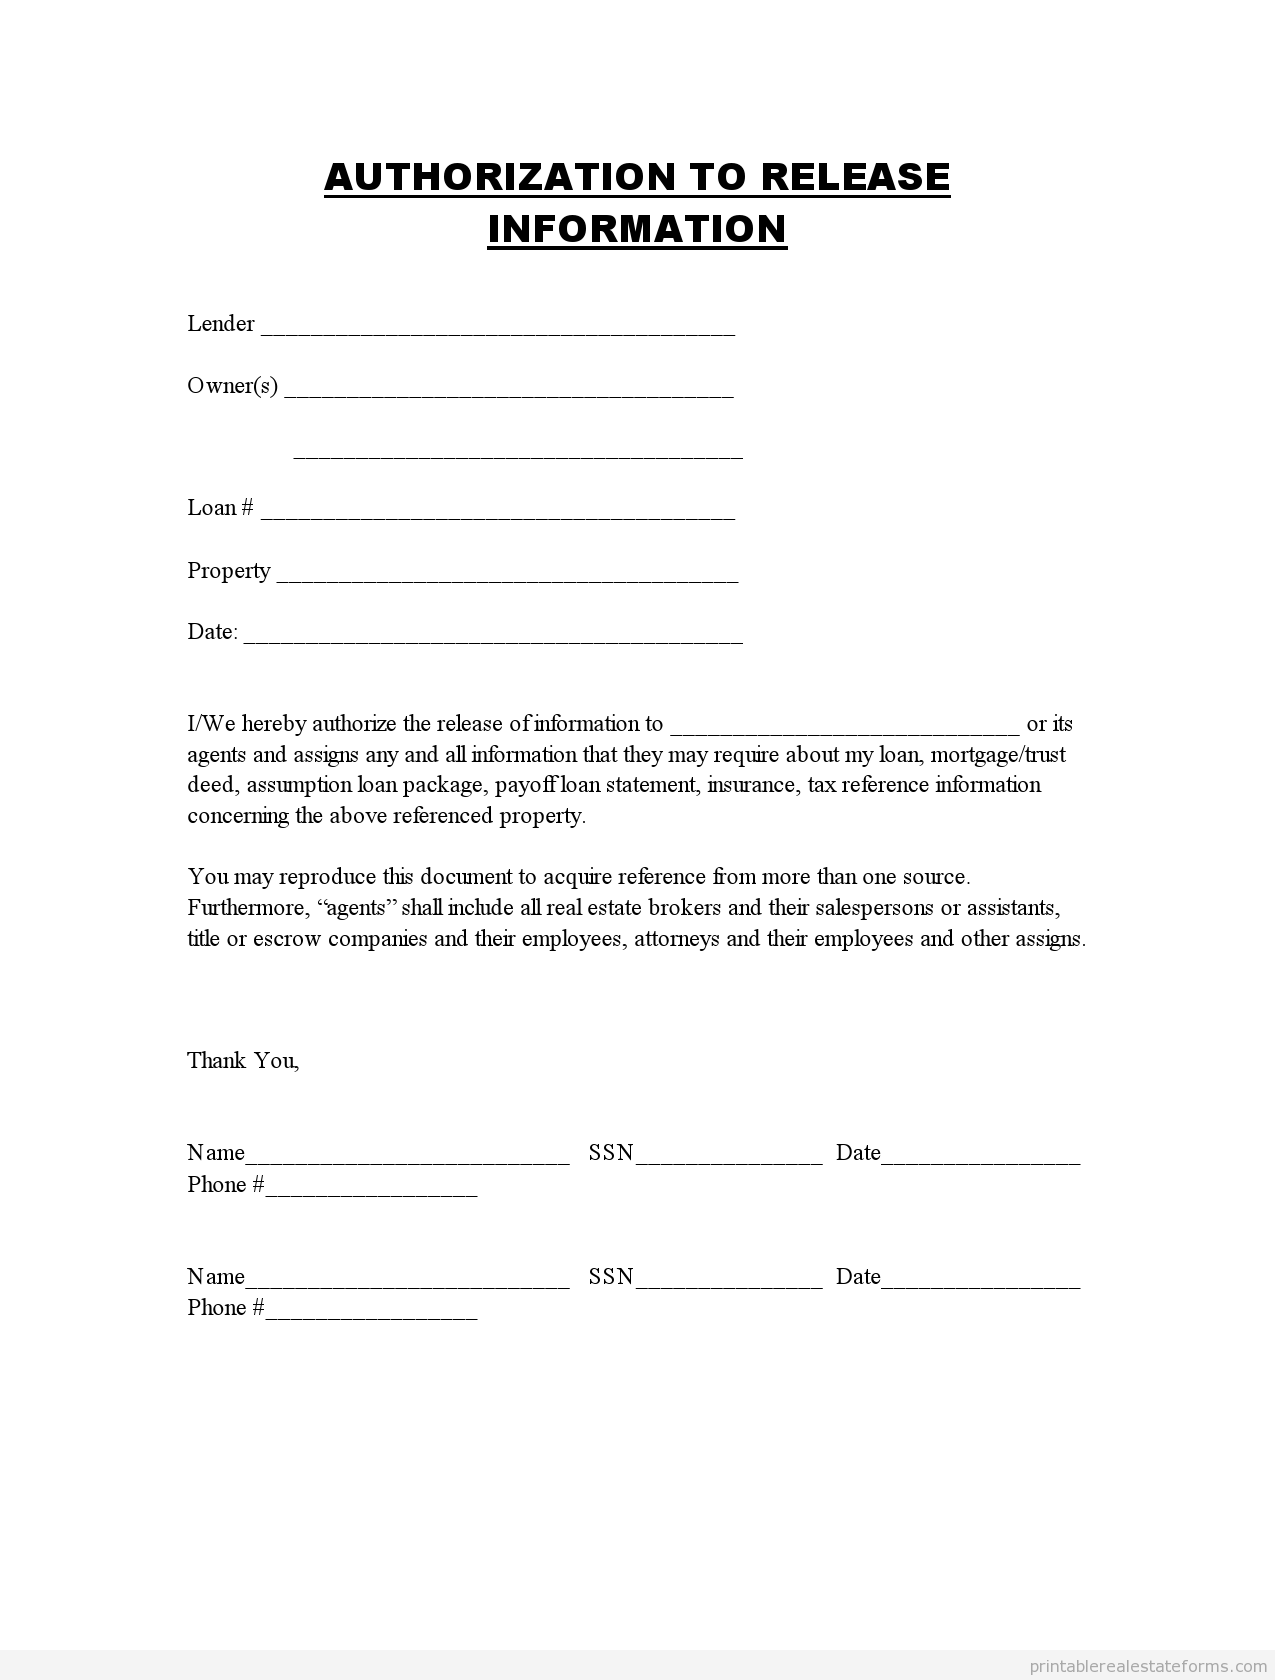 printable authorization to release information template  release of information forms printable authorization to release information form blank authorization to release information template realestate letter